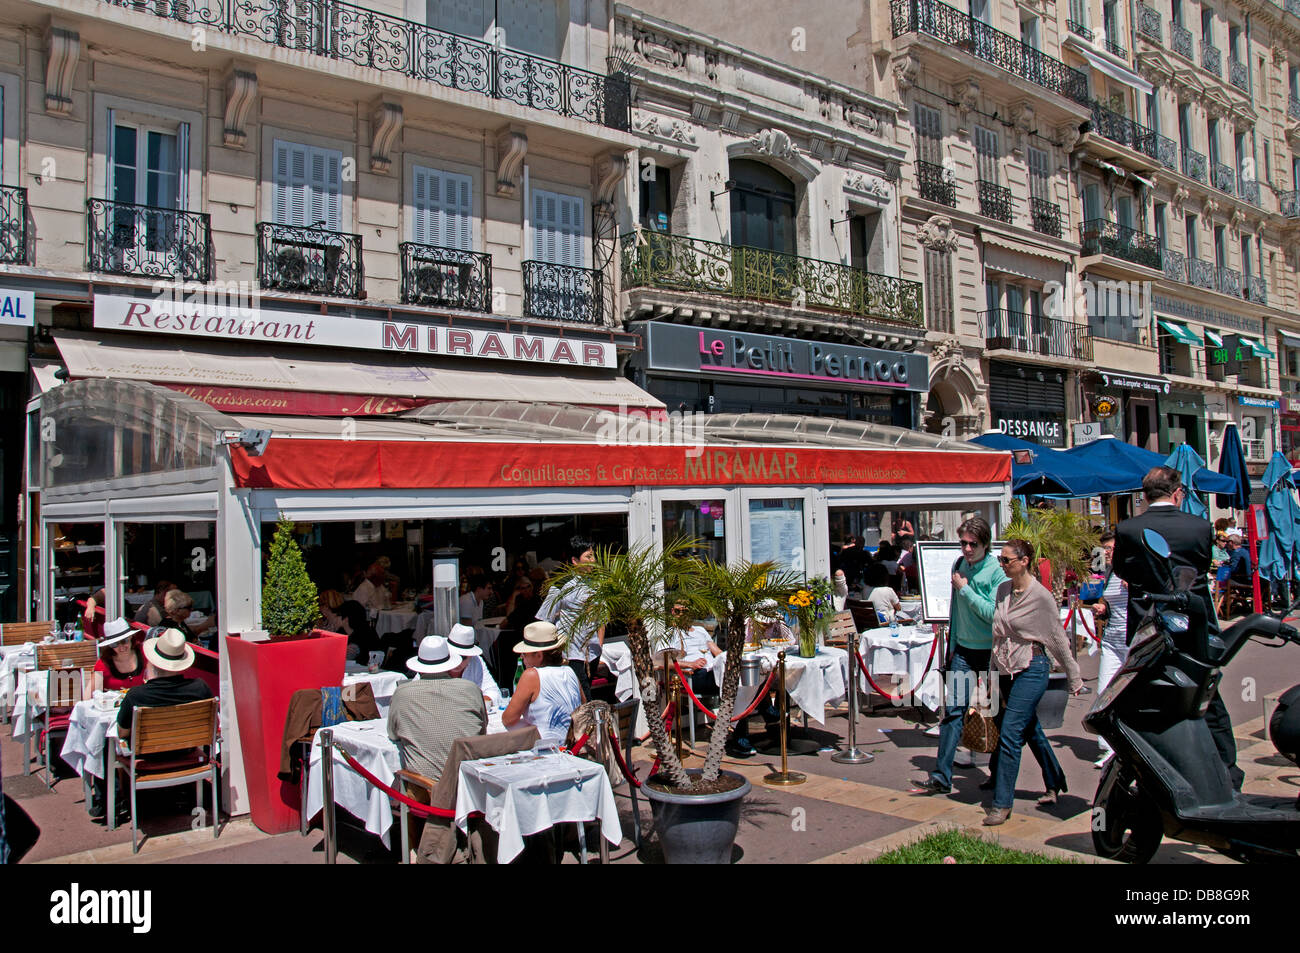 Miramar bouillabaisse fish soup restaurant cafe bar pub marseilles stock photo 58580755 alamy - Au vieux port restaurant marseille ...